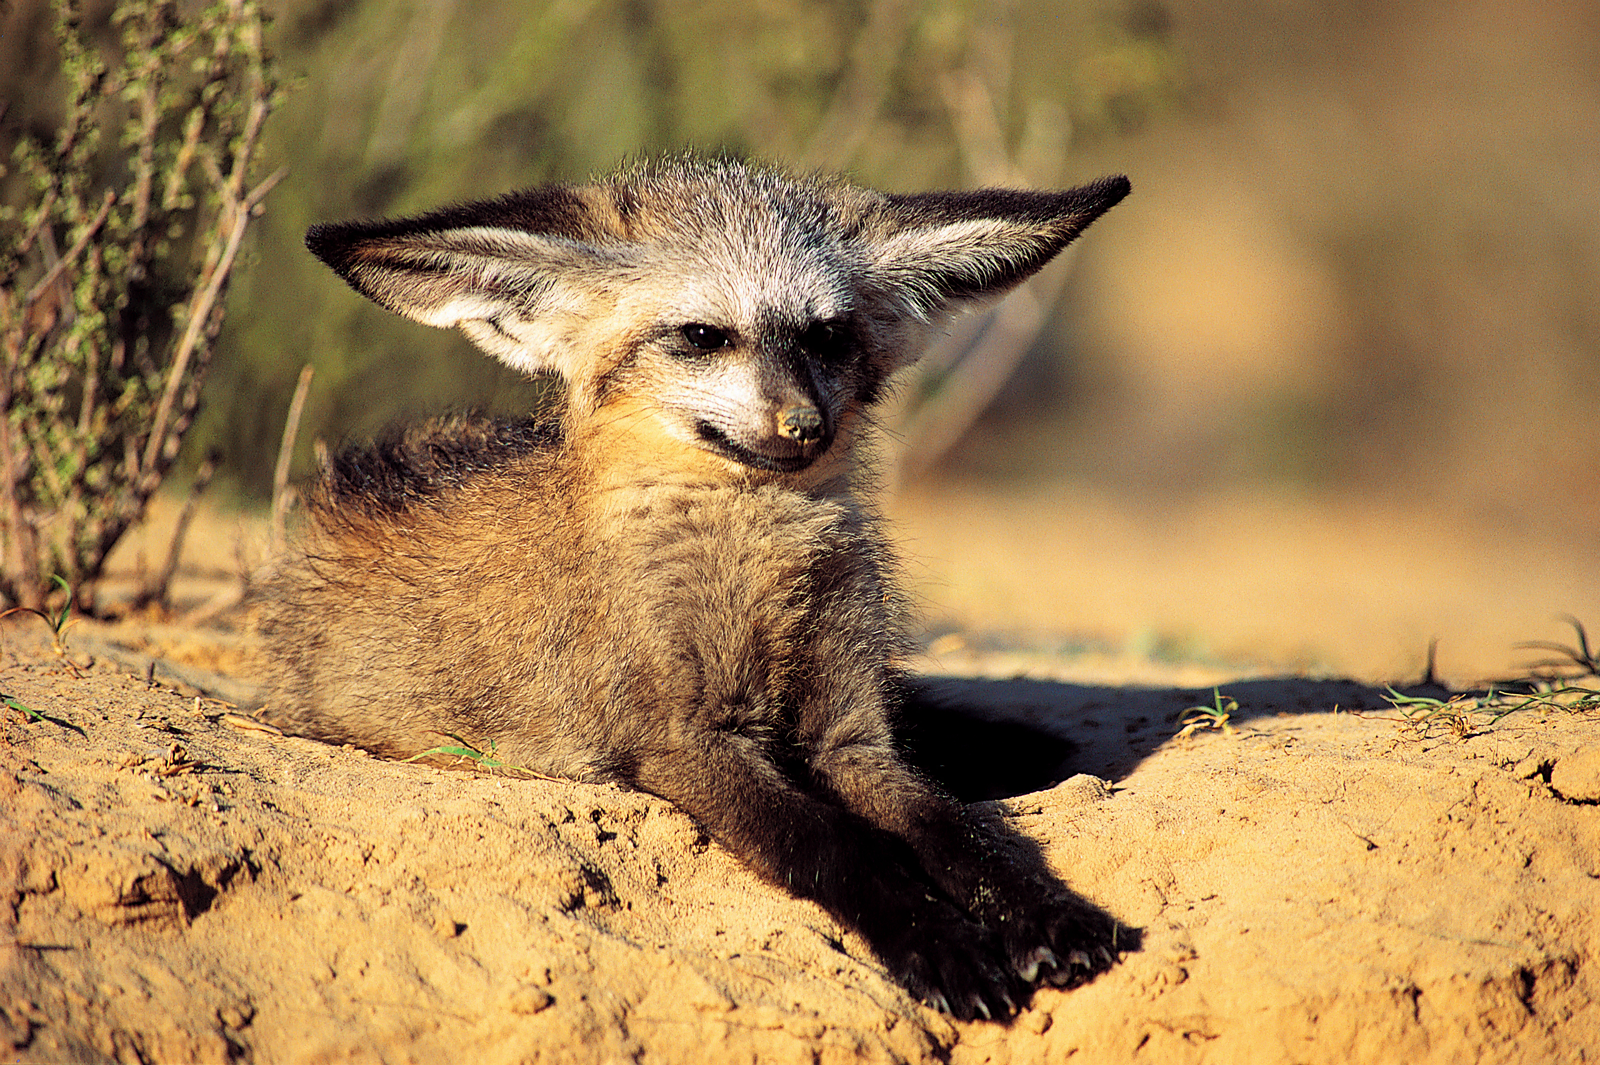 Sweet And Cute Wallpaper Bat Eared Fox Metazoa